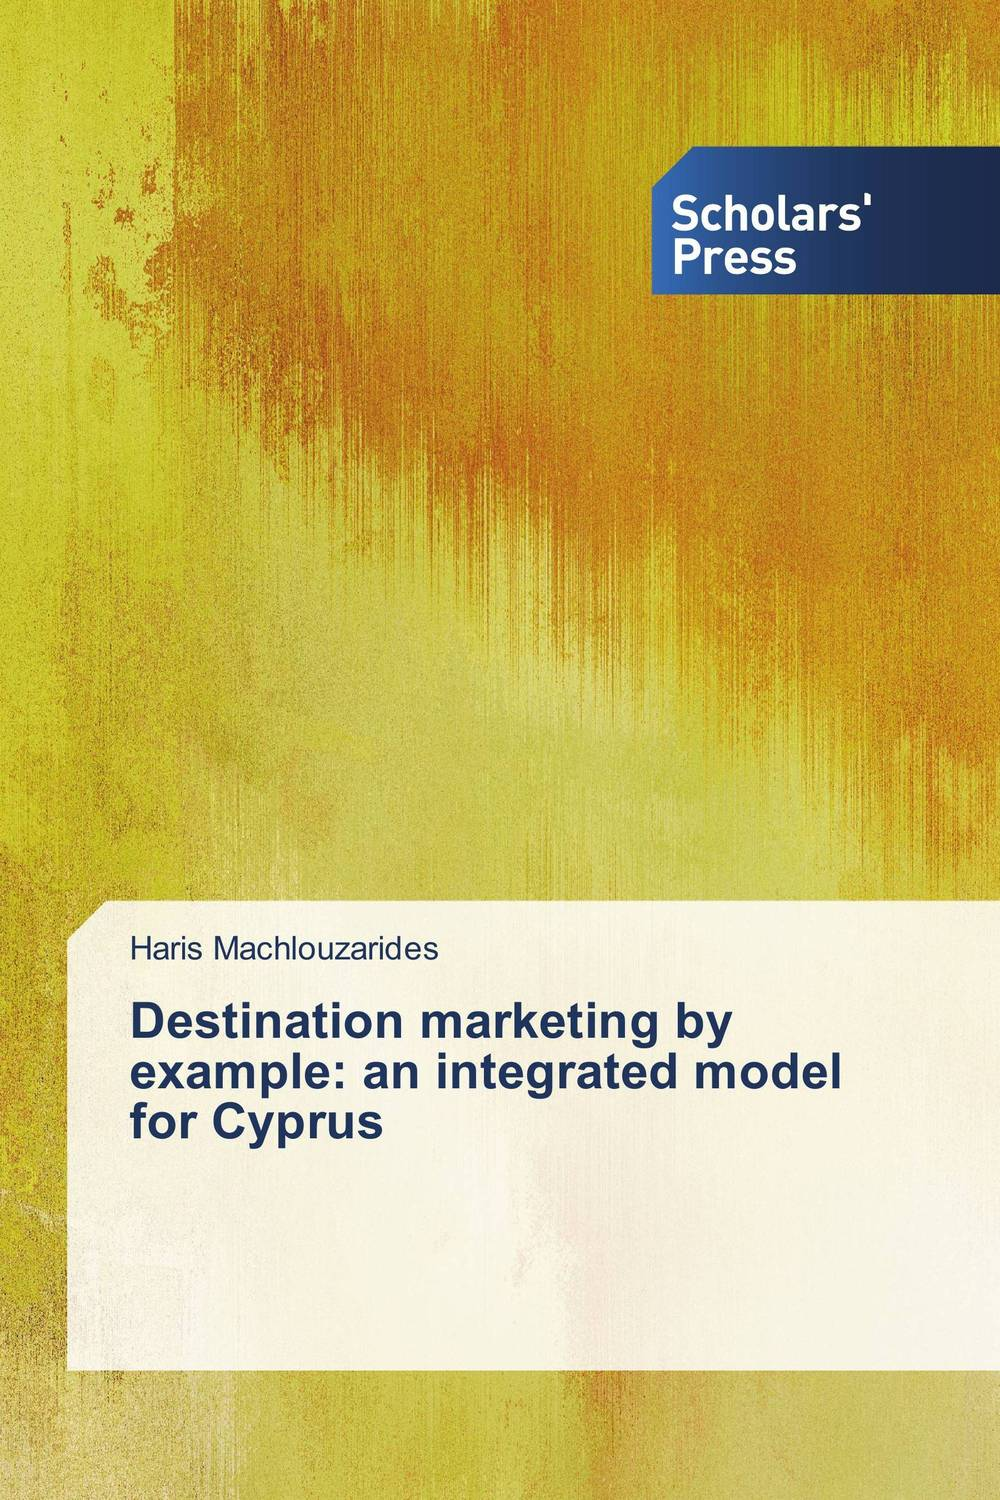 Destination marketing by example: an integrated model for Cyprus sponsorship on marketing communication process